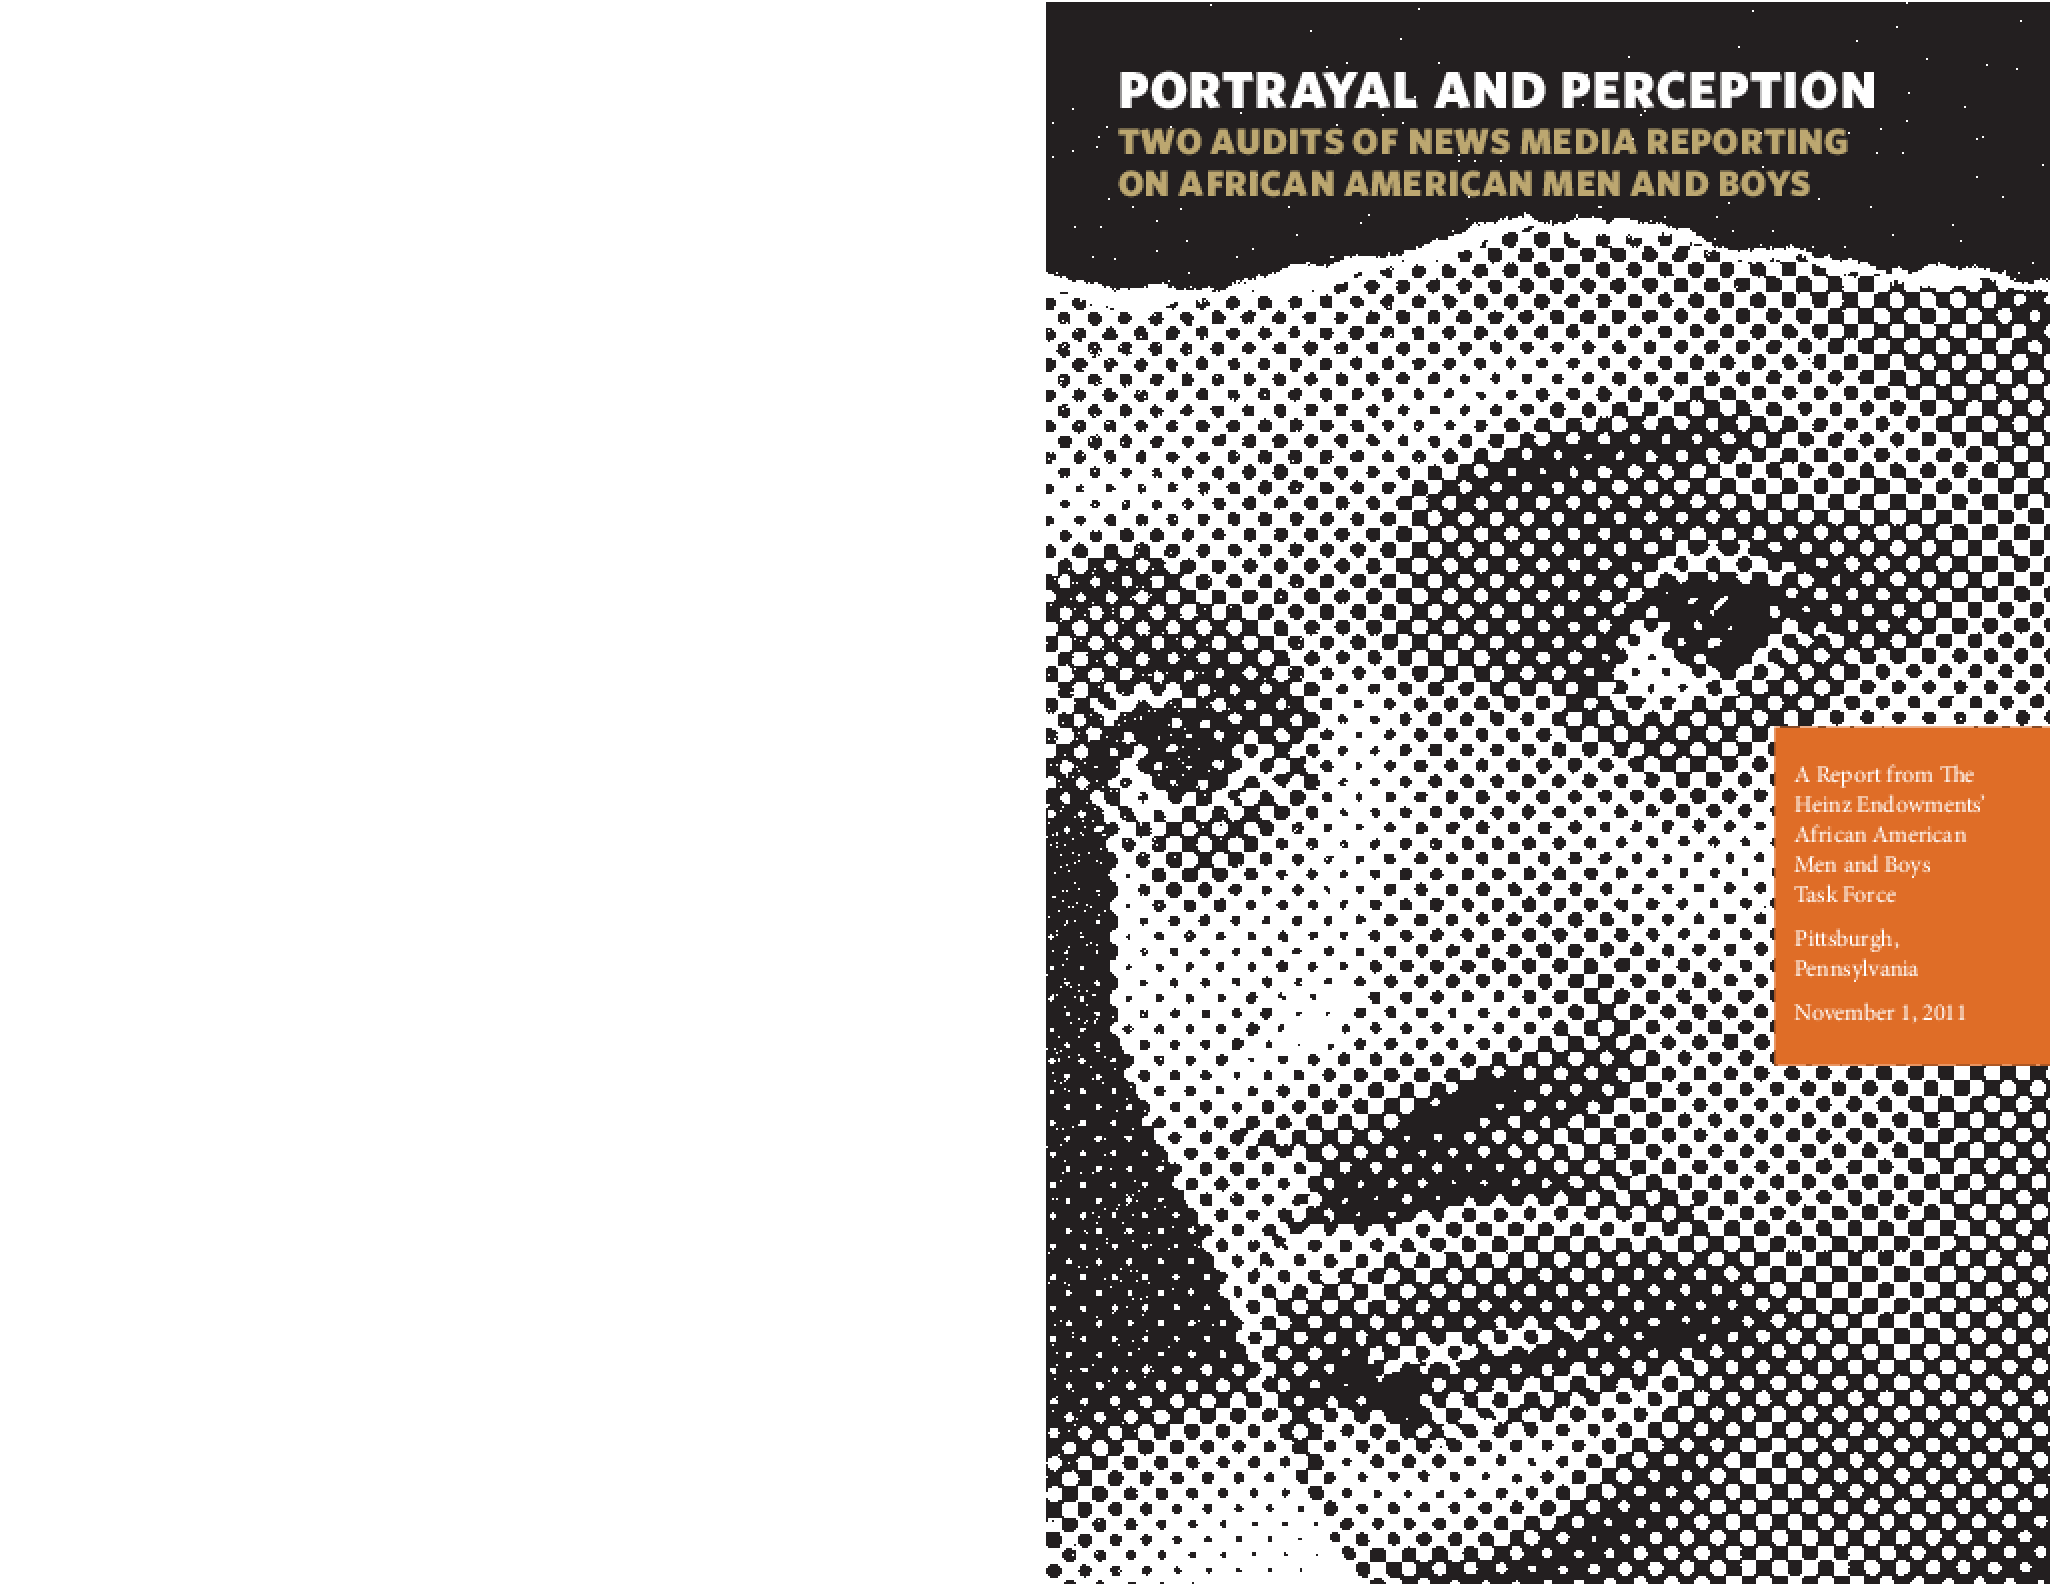 Portrayal and Perception: Two Audits of News Media Reporting on African American Men and Boys